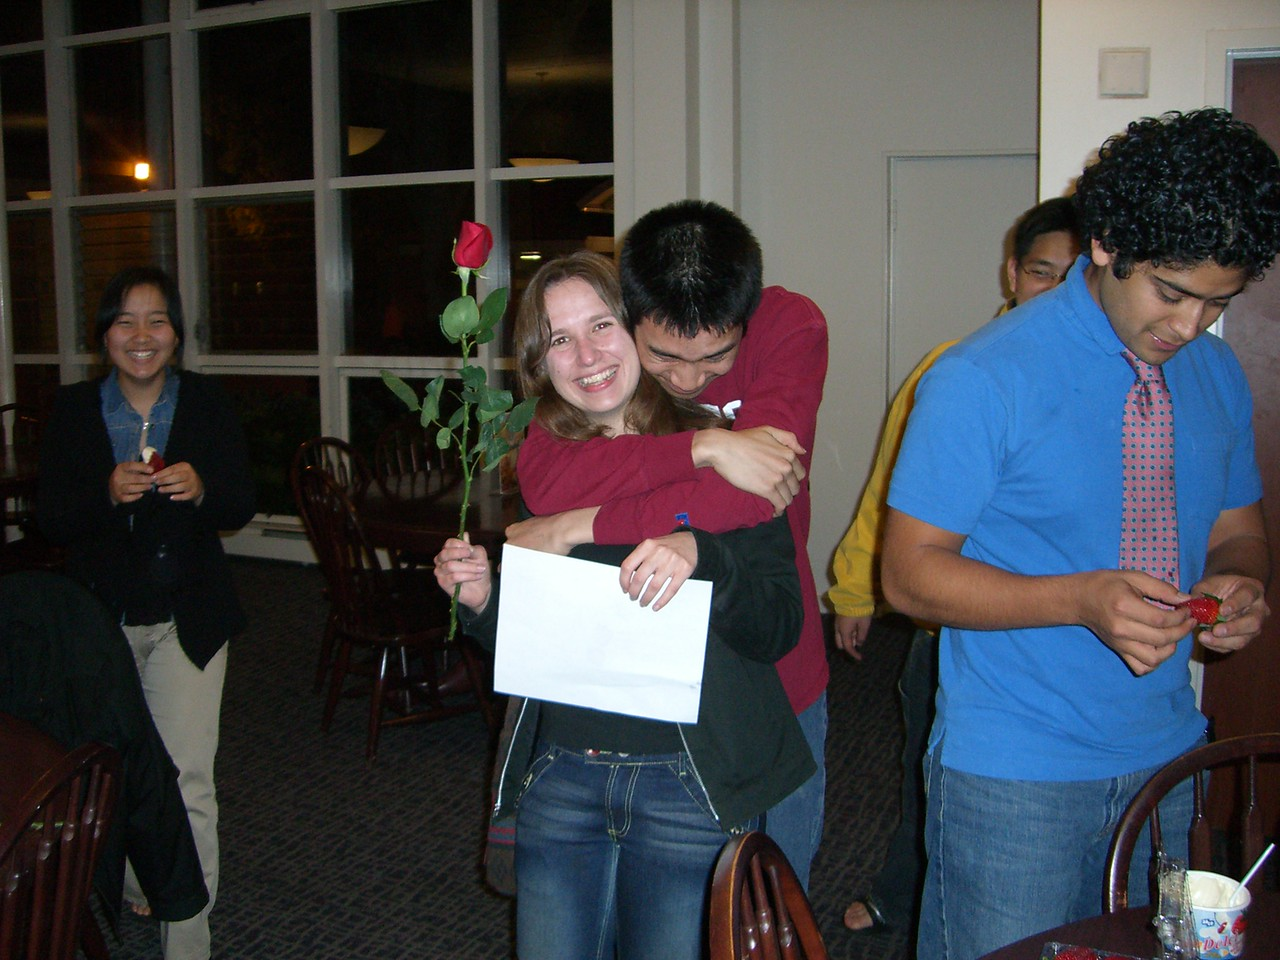 2006 02 13 Mon - Michael Lin embraces Jenna Sloat